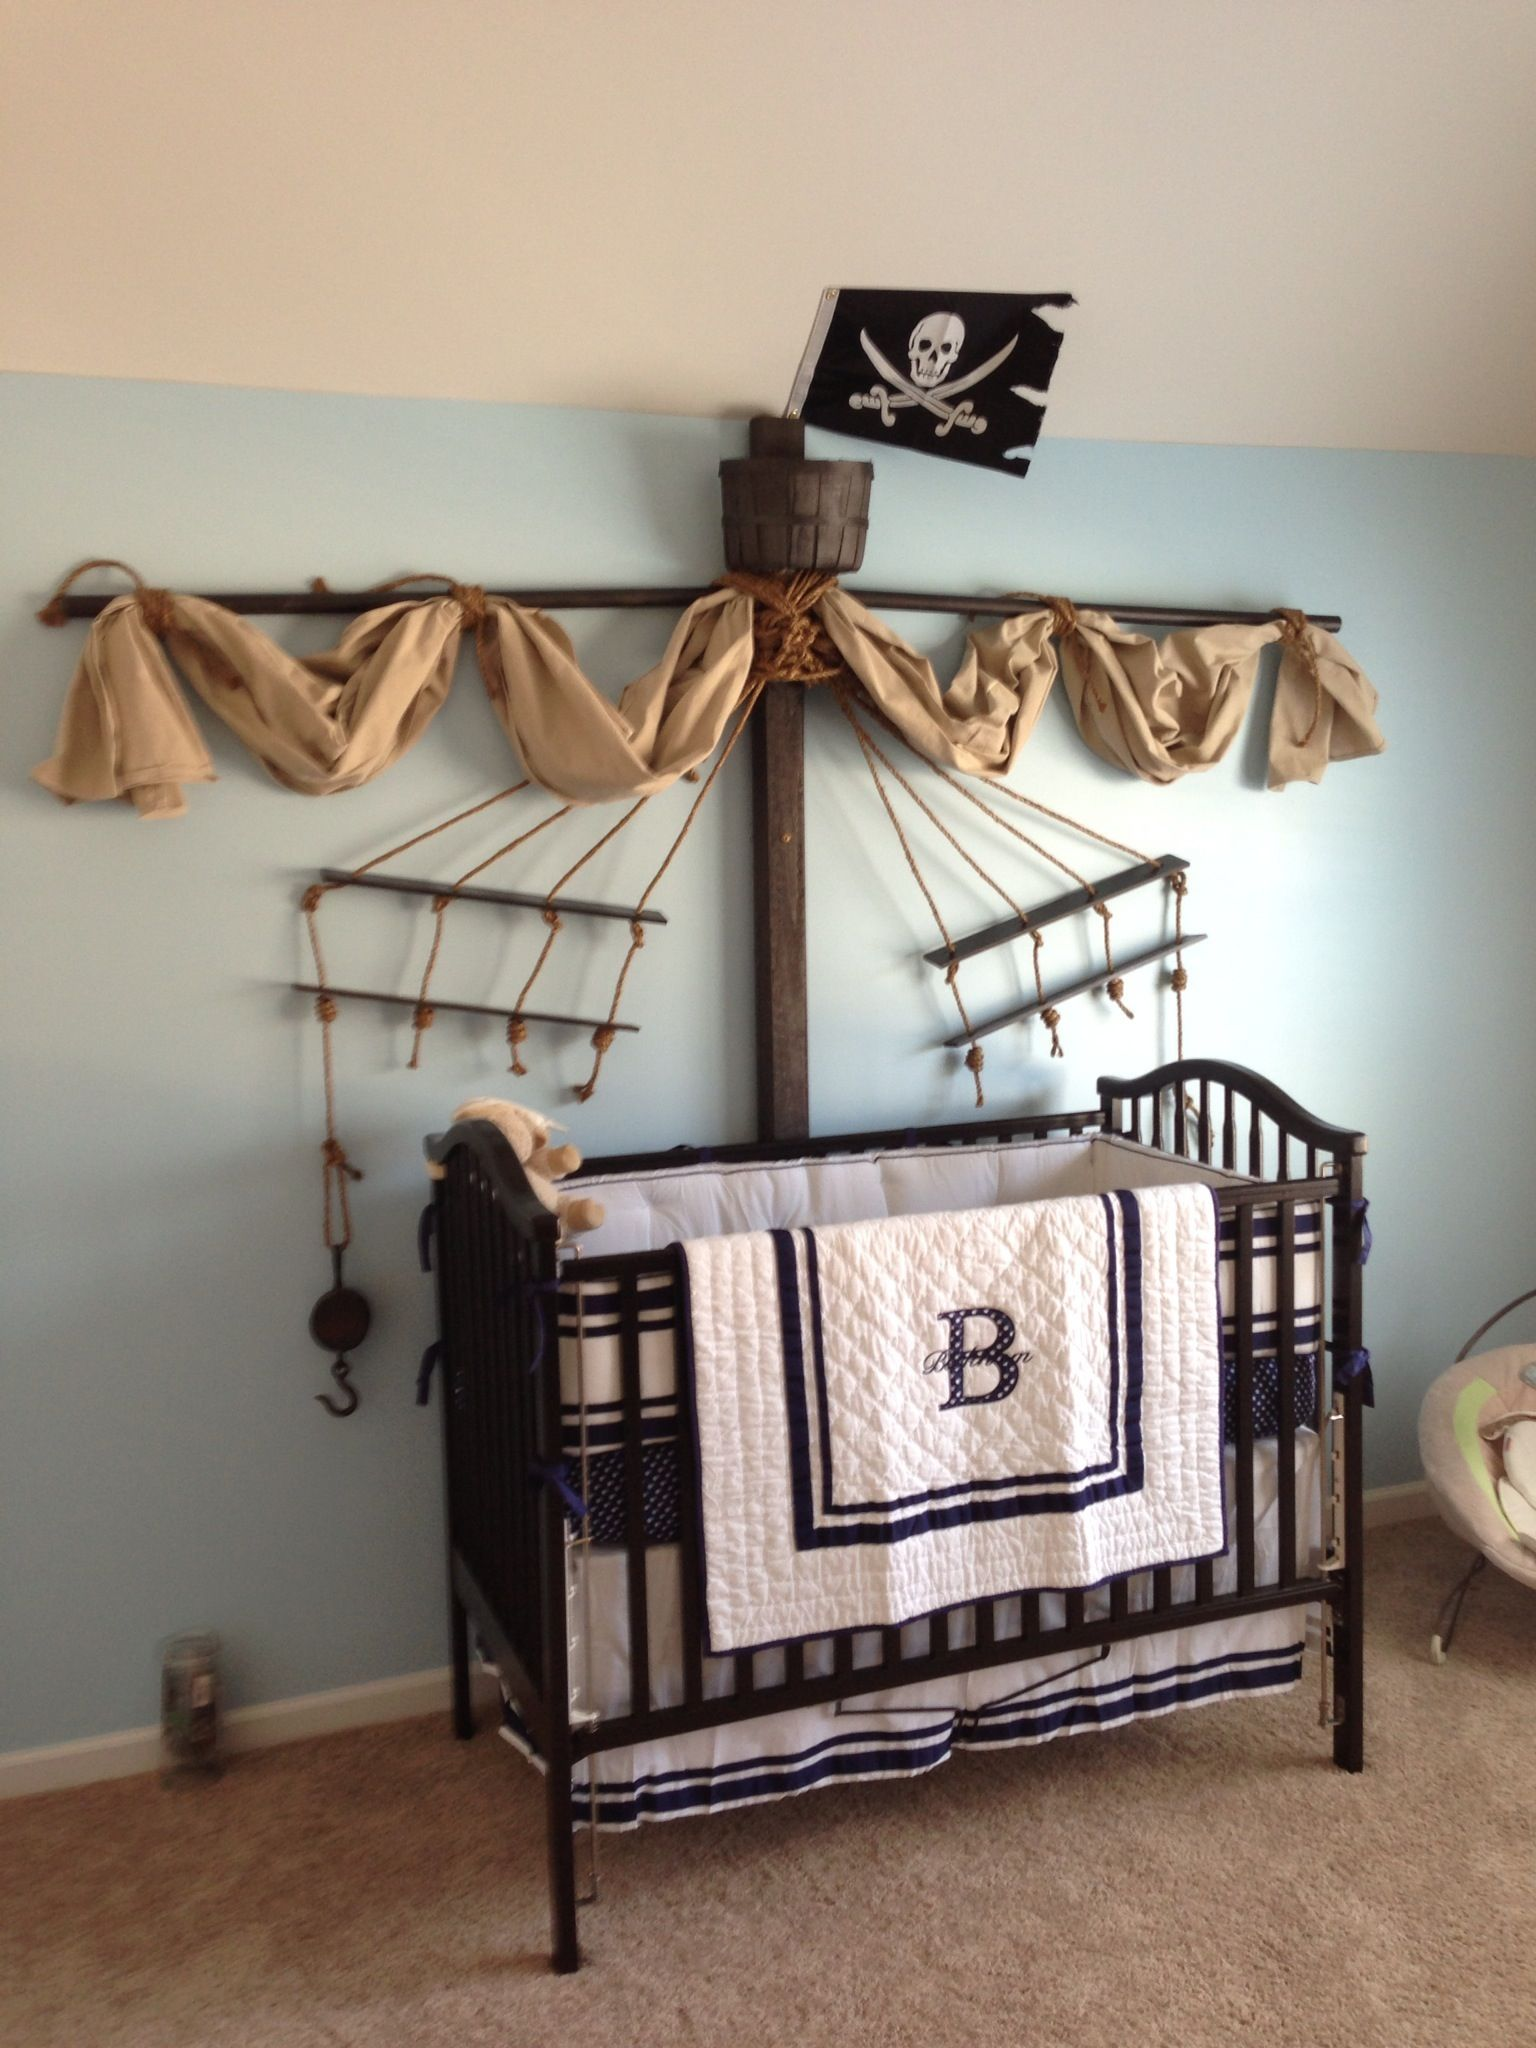 Our sonu0027s Classy nautical pirate themed nursery! Completely made by my husband and me! & Pinterest Fab 4: Nursery Decor Ideas | Themed nursery Nursery and ...